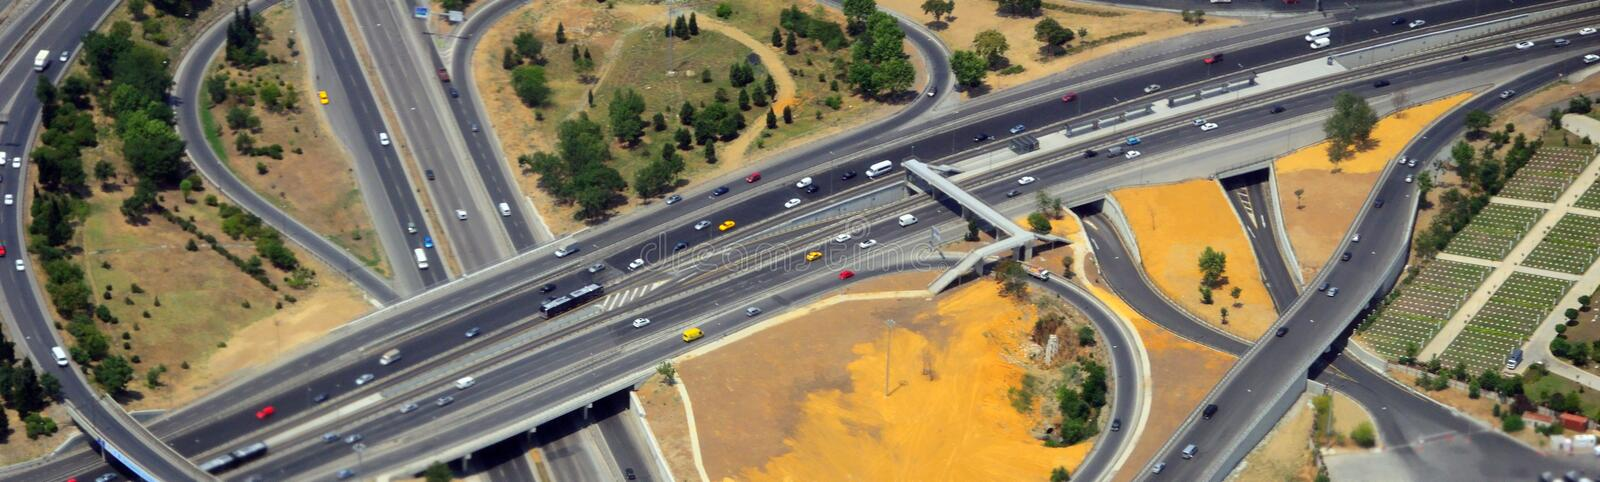 Aerial highway interchange stock photo